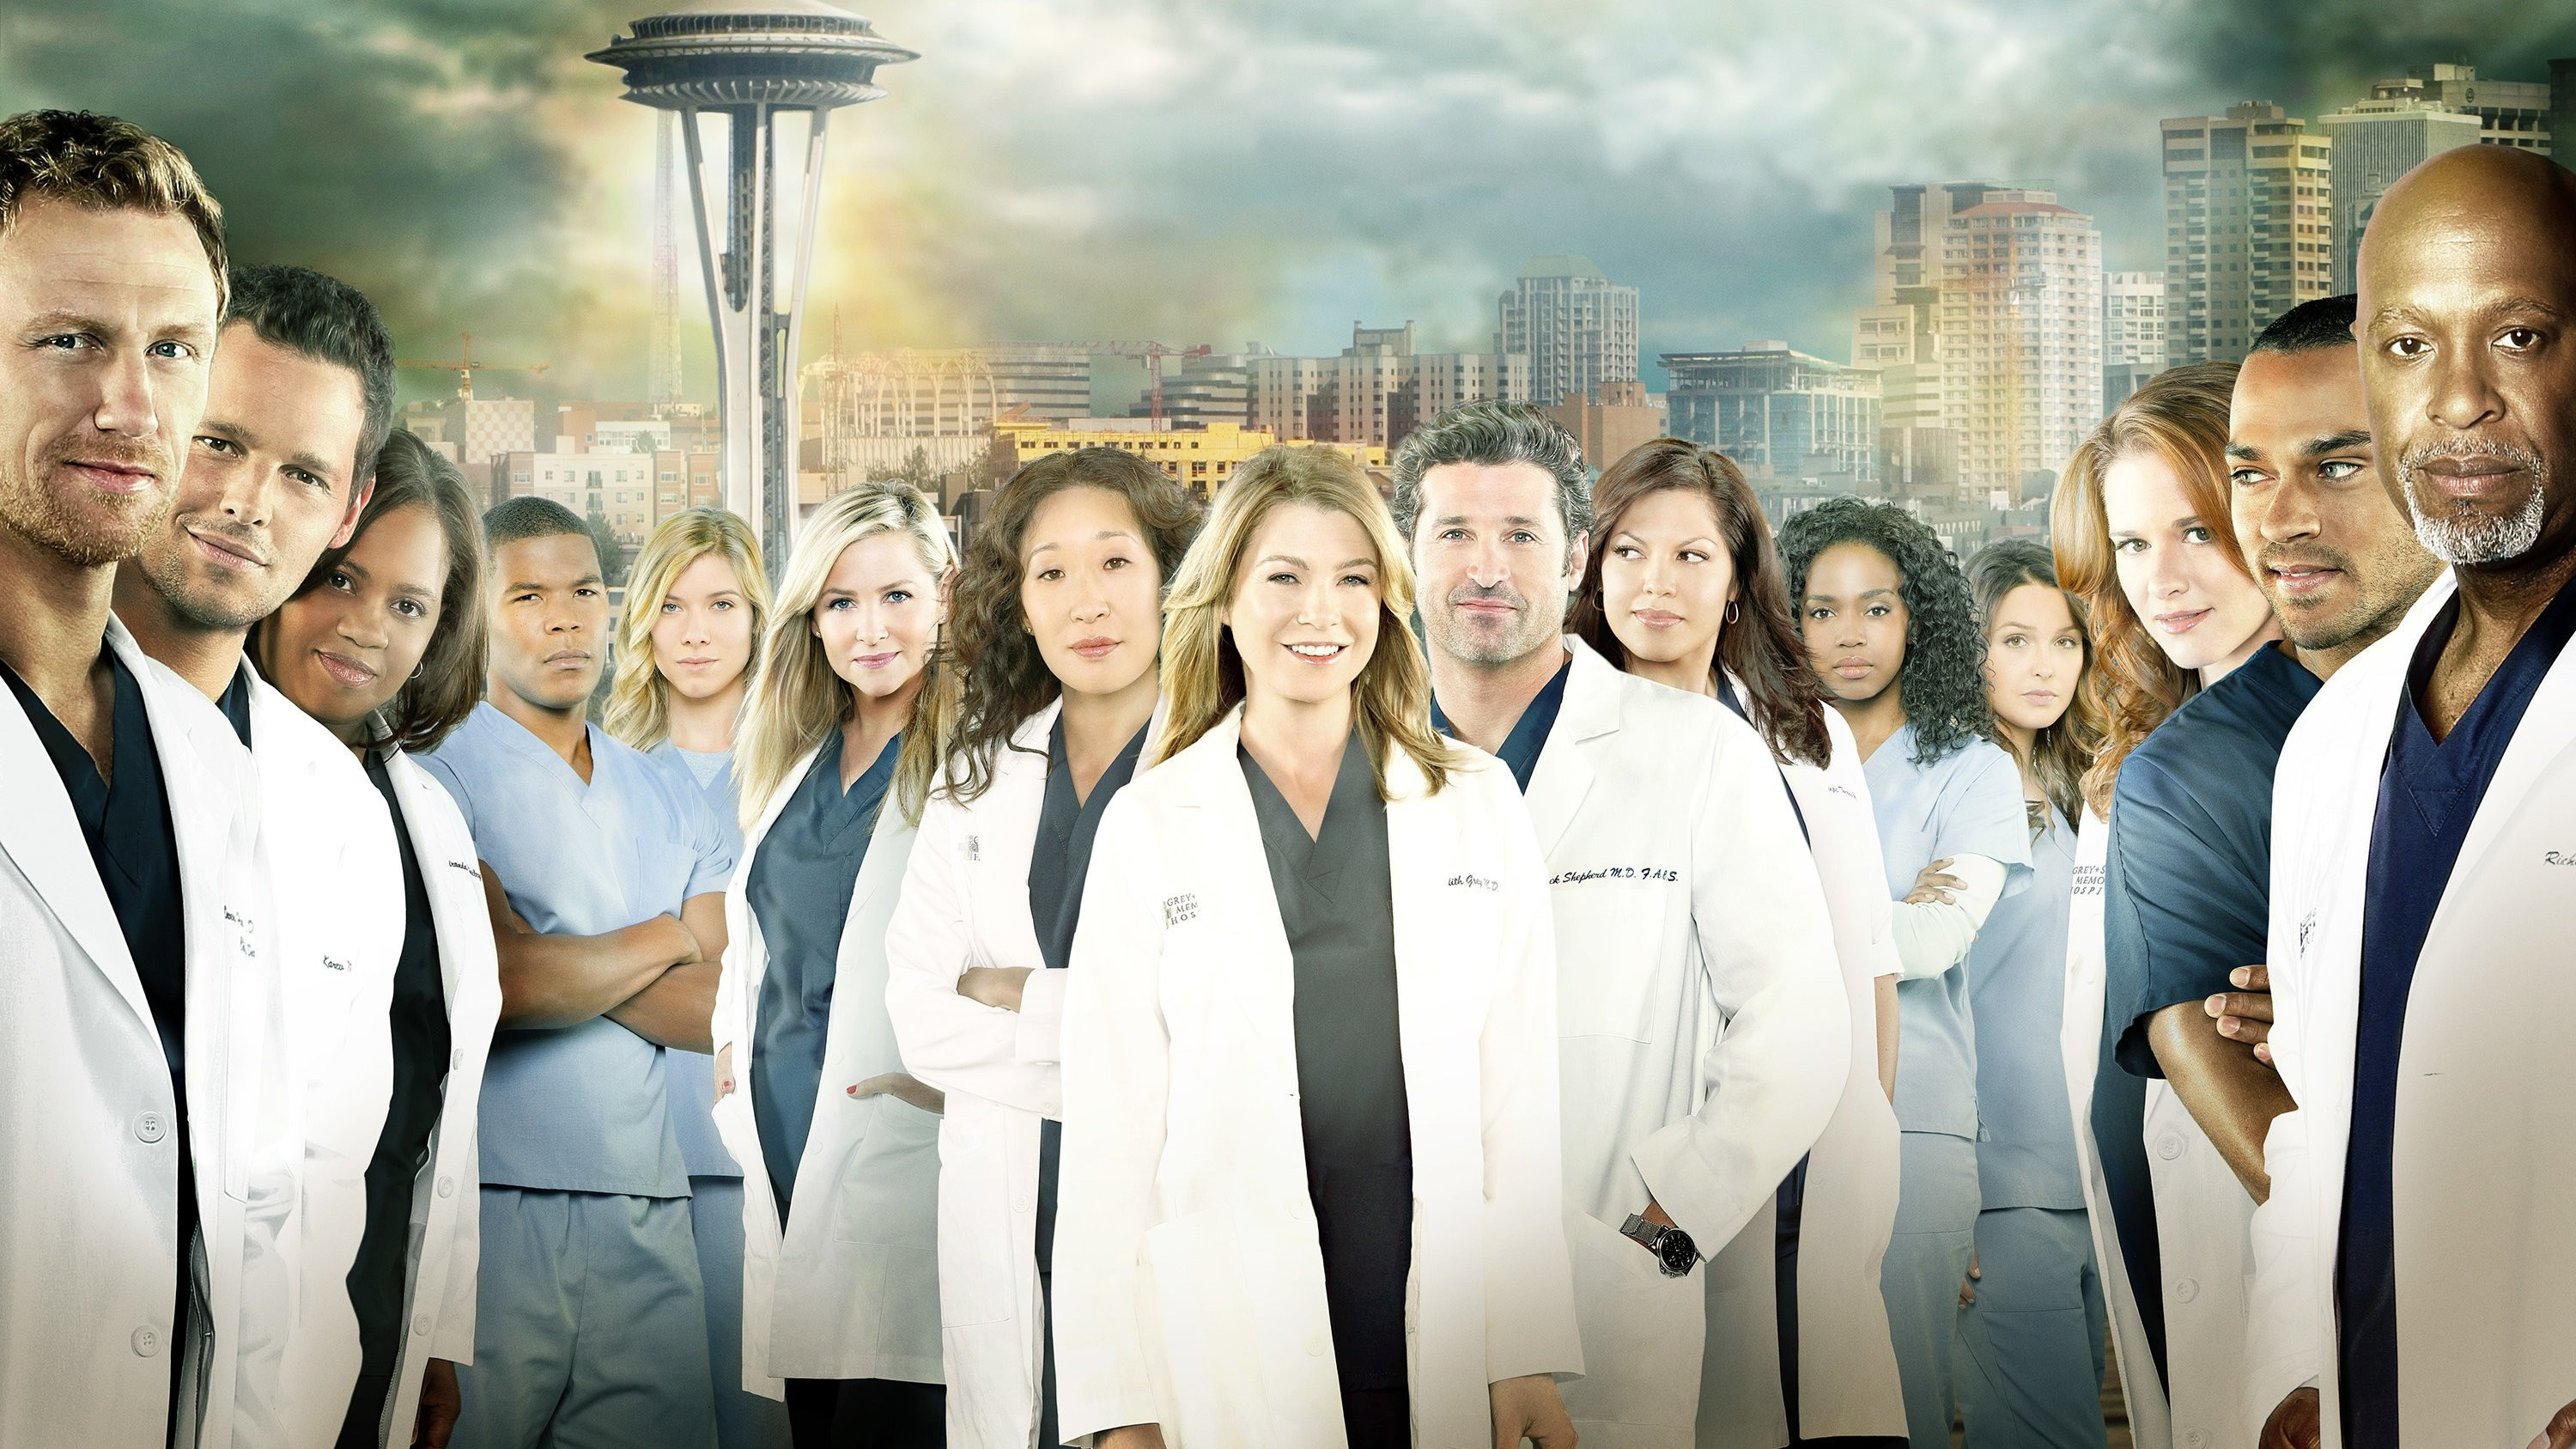 Greys Anatomy HD Wallpapers 79 images 3000x1687